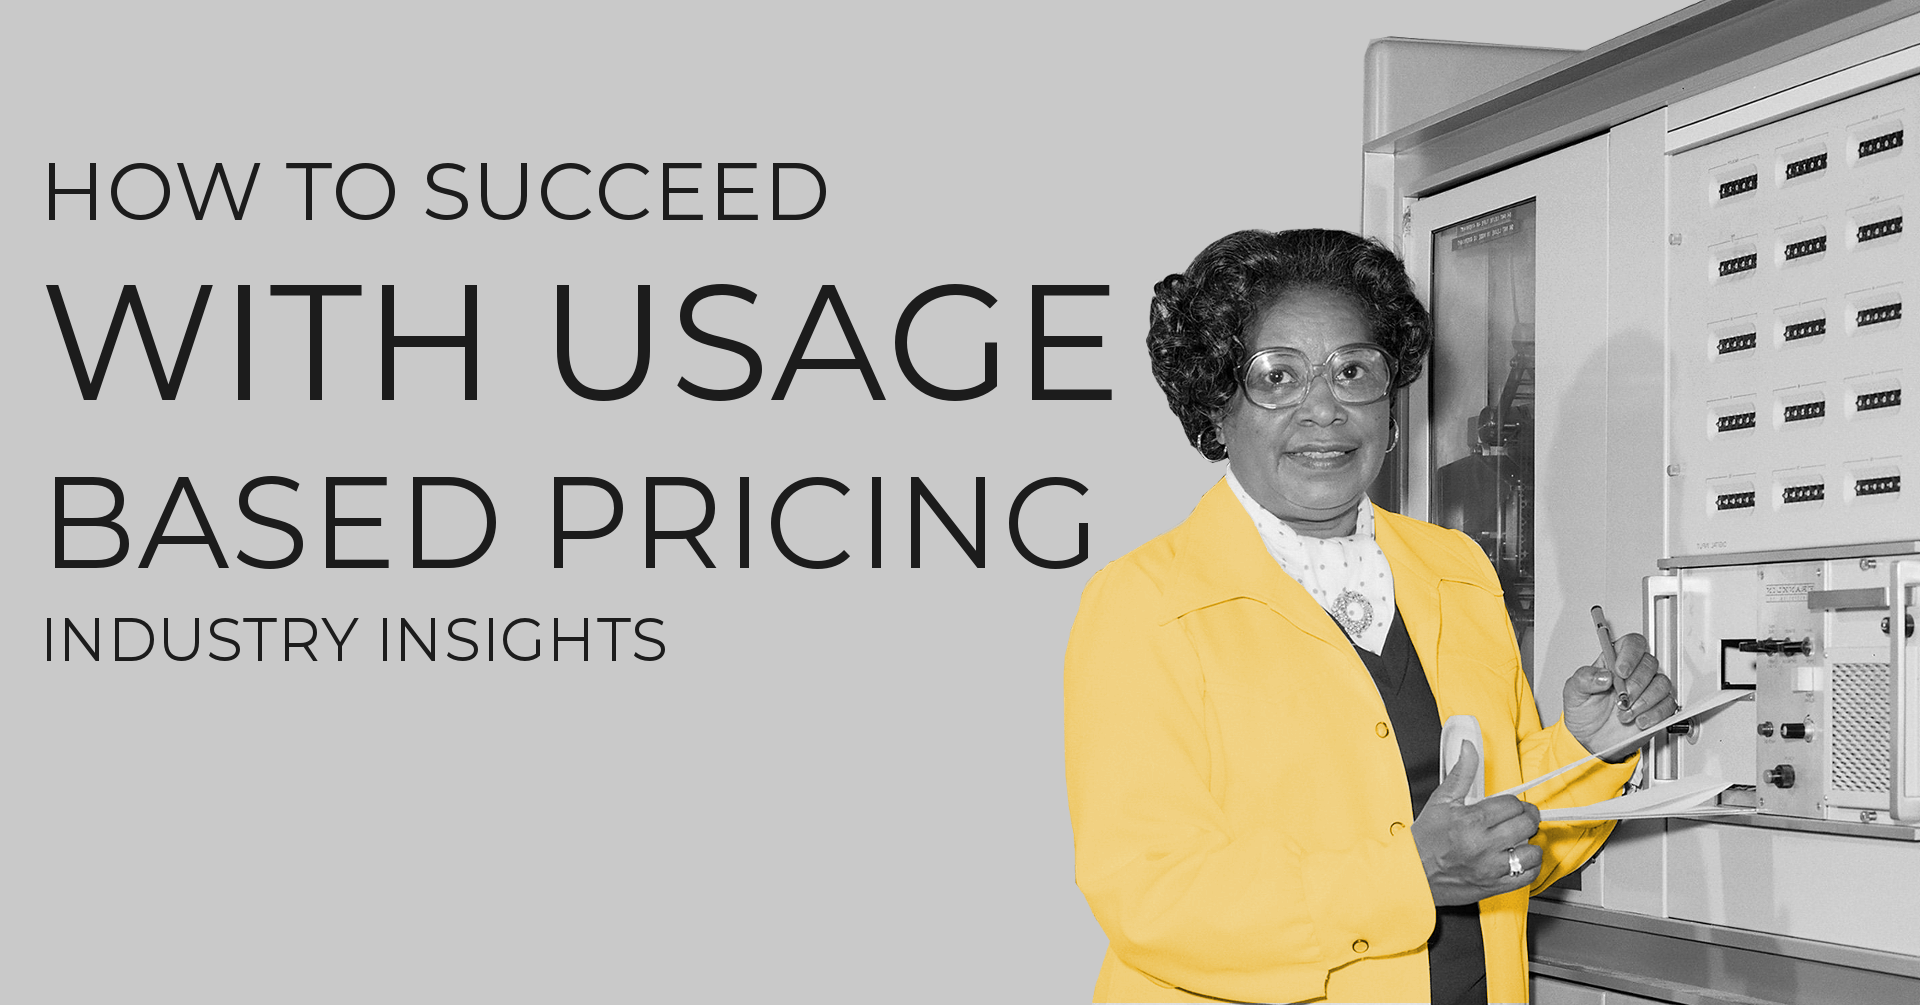 How To Succeed with Usage-Based Pricing?